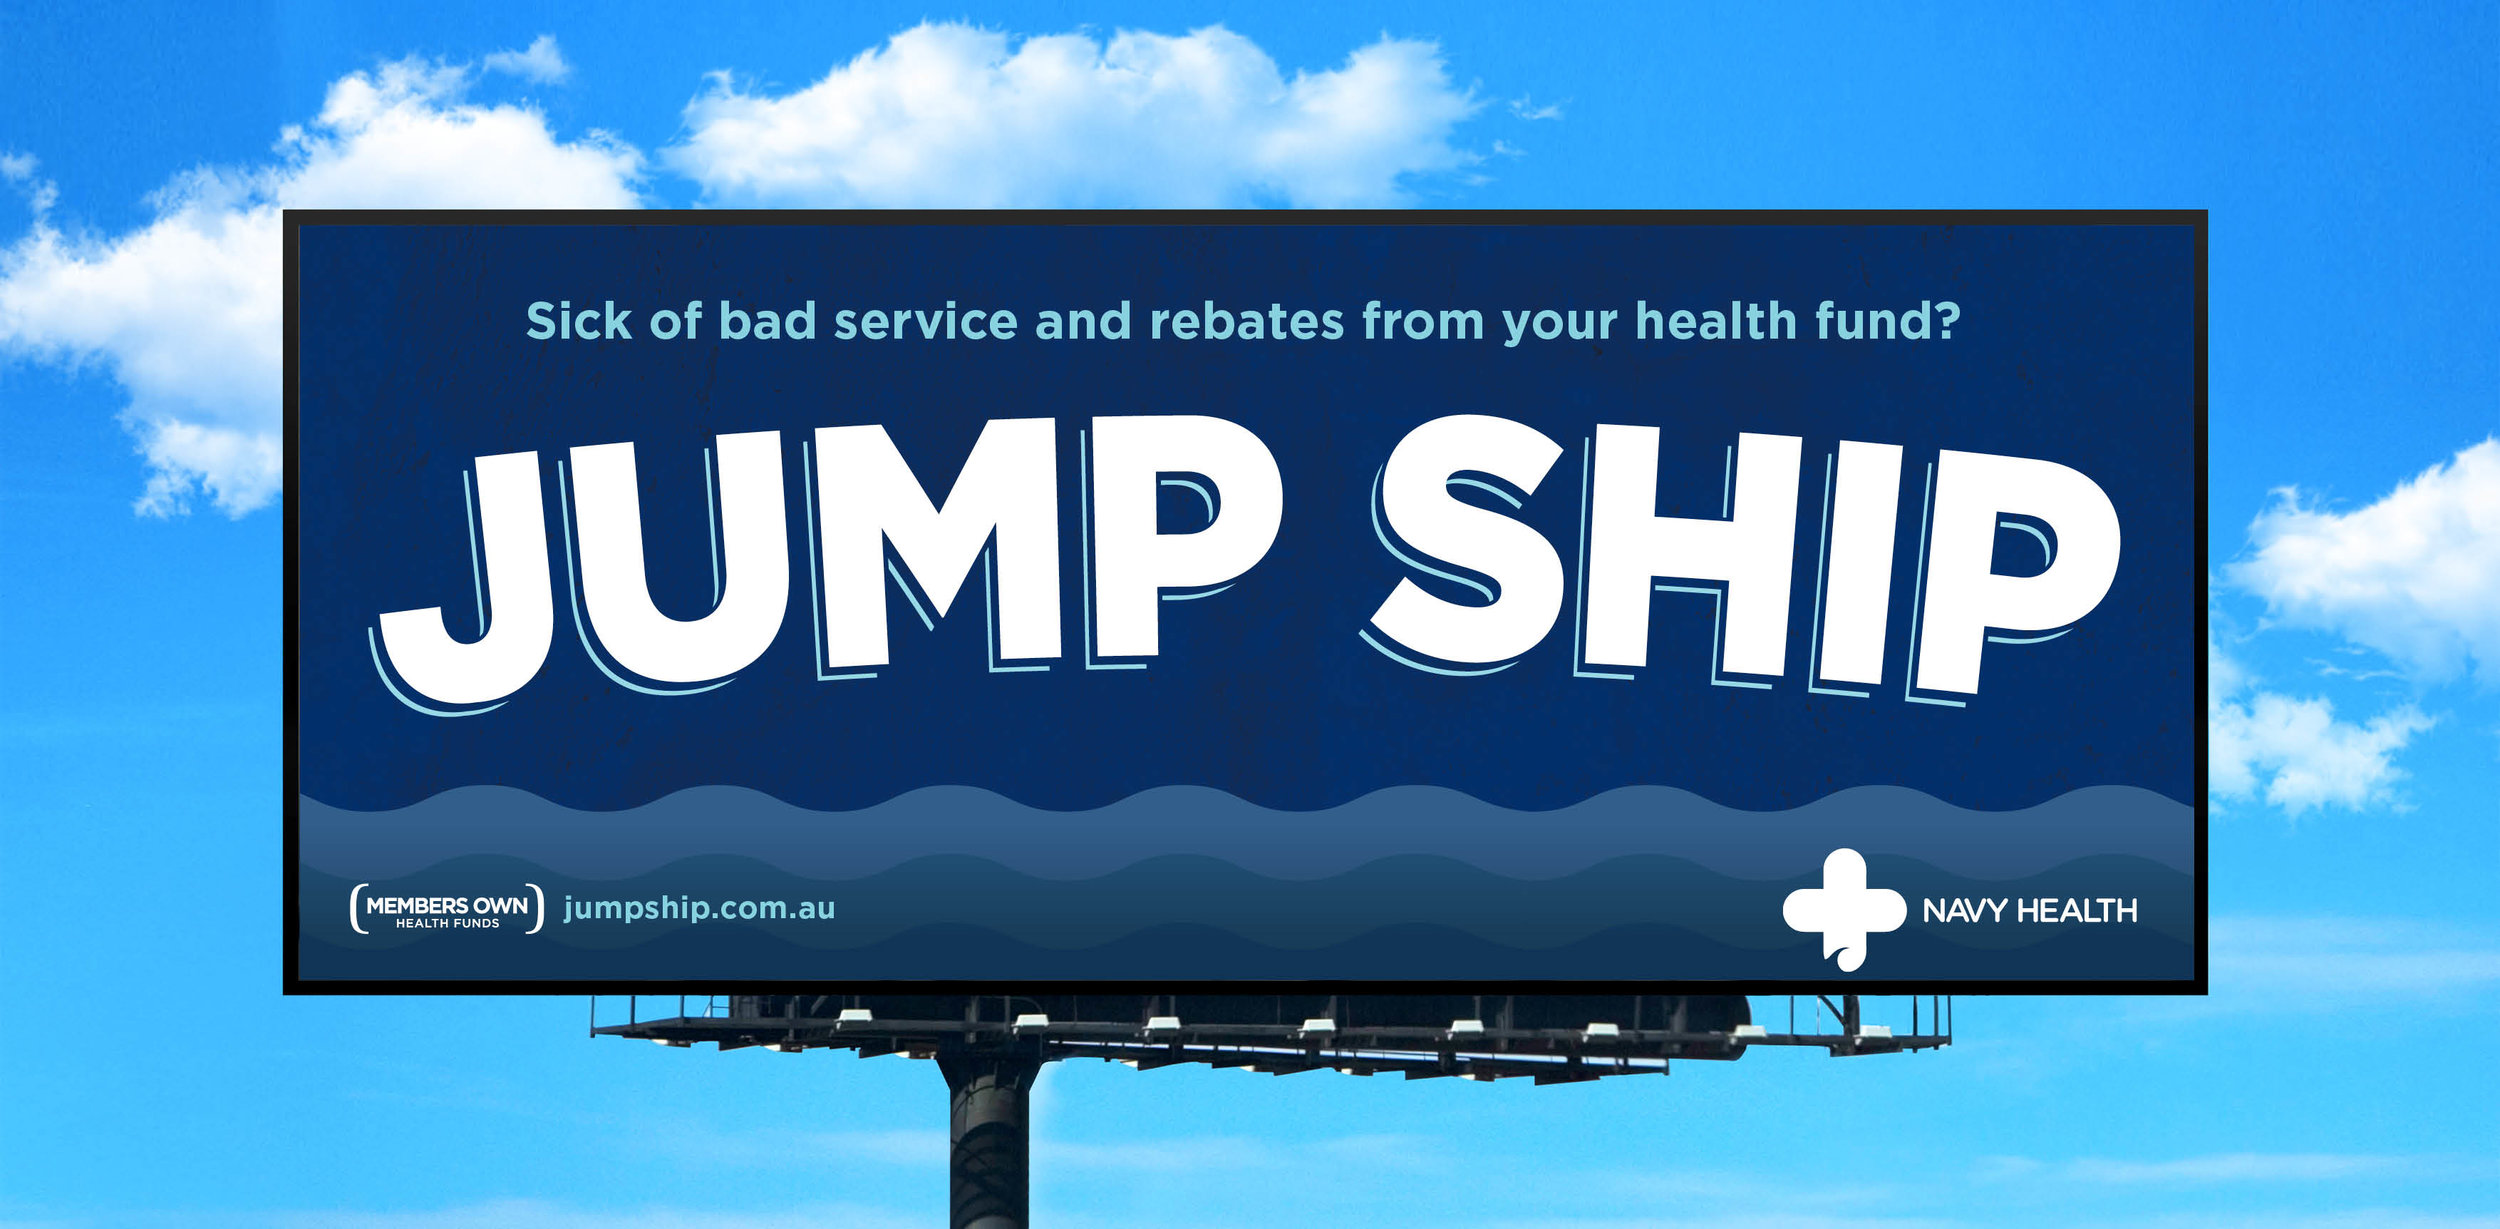 Jumpship_billboard_02.jpg